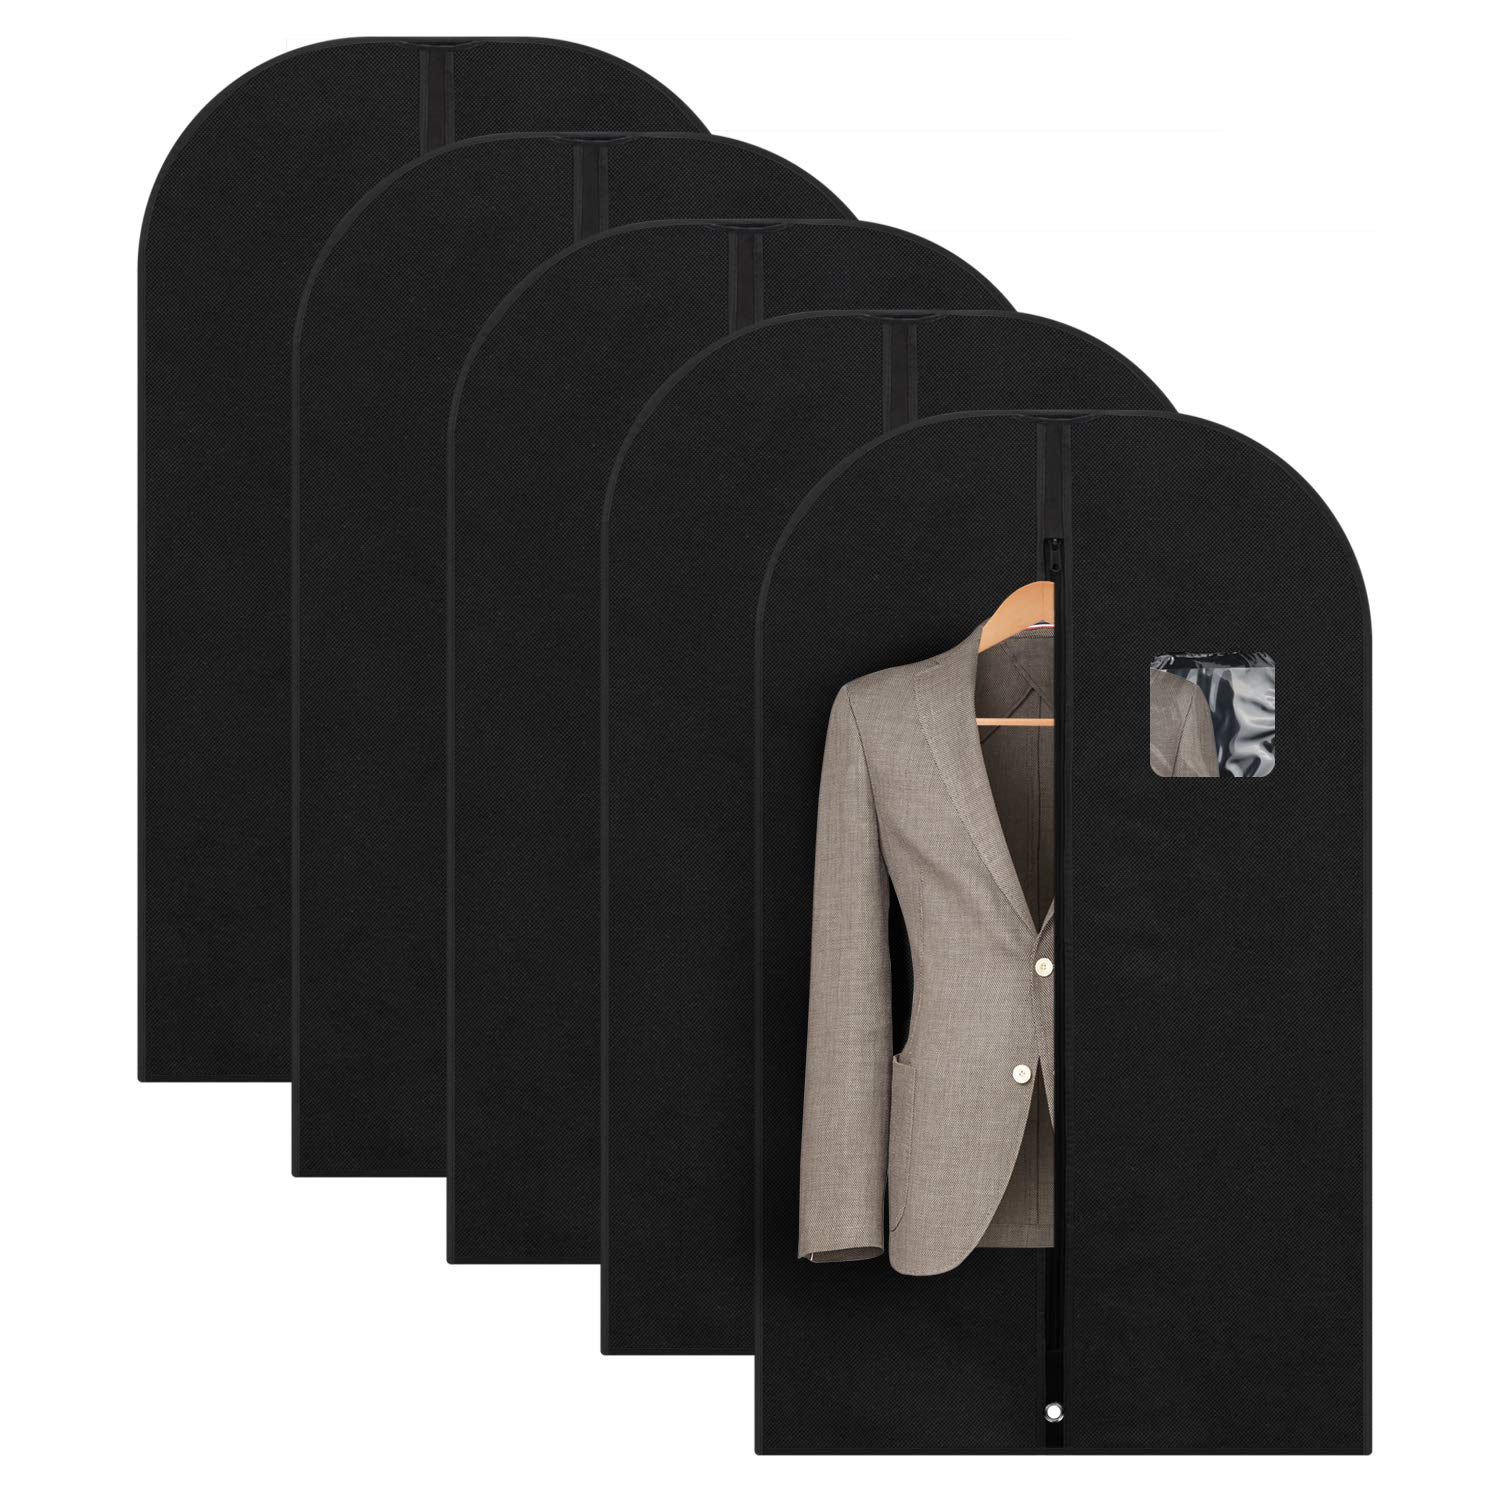 Titan Mall Suit Garment Bag for Storage Dress Garment Covers with Clear Window for Travel Pack of 5